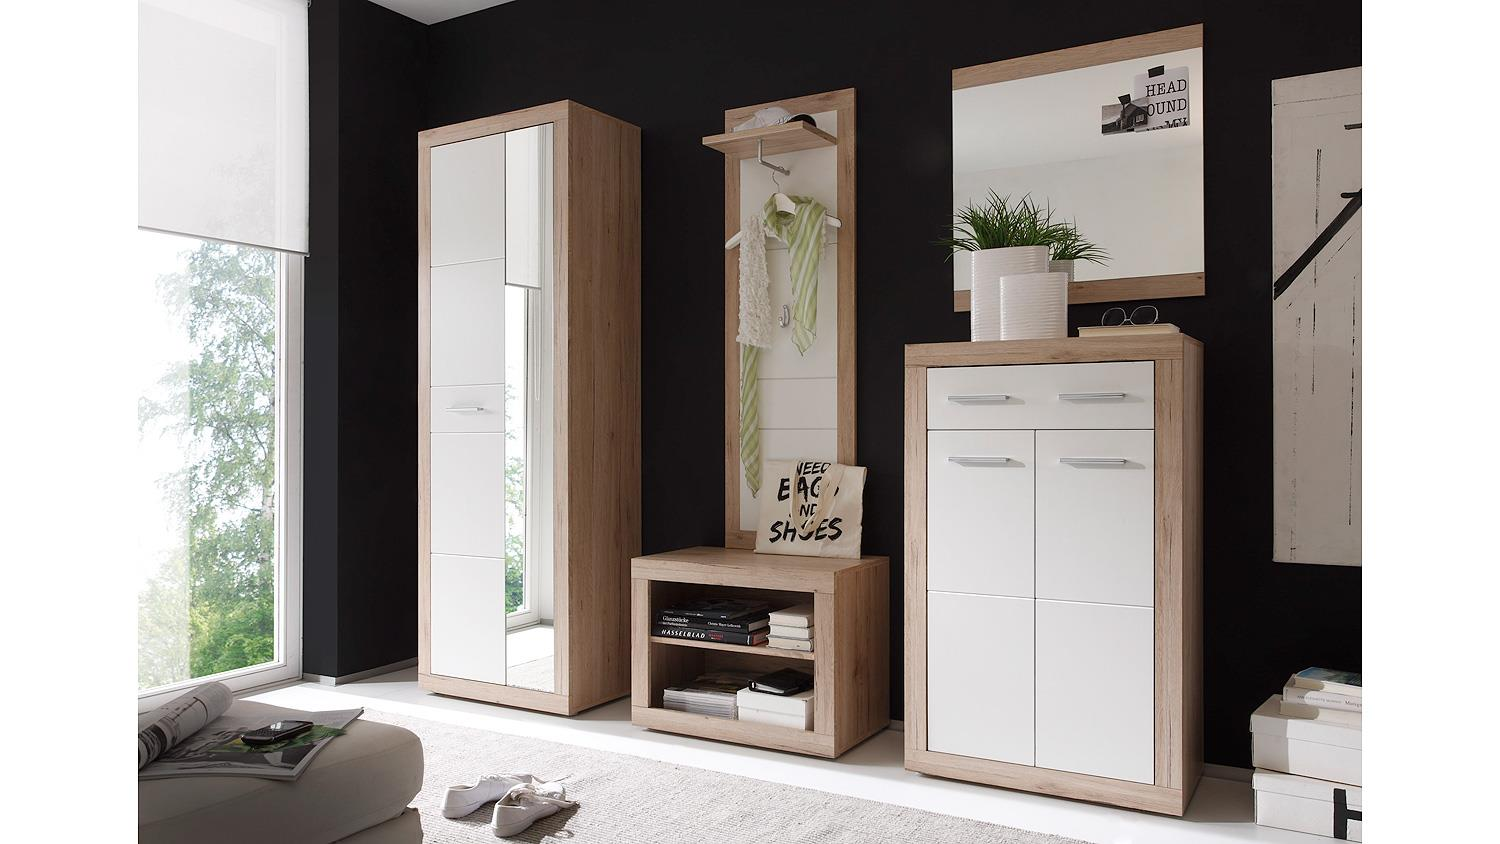 sitzbank garderobe bank garderobe wei elegant sitzbank wei mit lehne bazdidplus with sitzbank. Black Bedroom Furniture Sets. Home Design Ideas